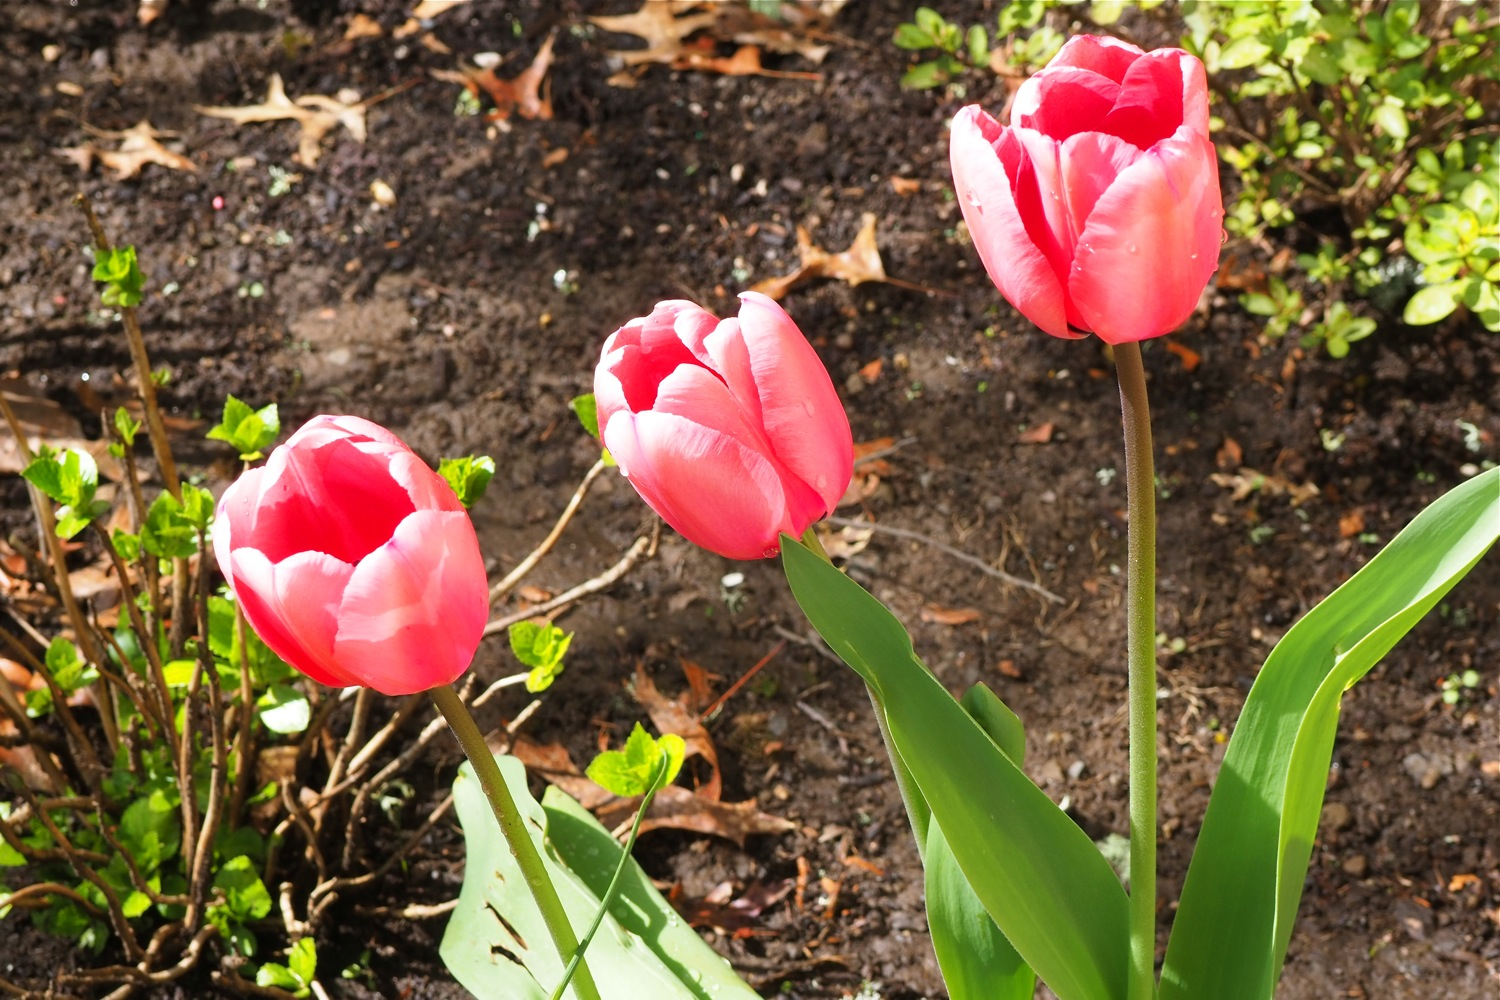 flatten the curve, coronavirus COVID-19 quarantine, COVID-19 quarantine, flattening the coronavirus curve, how to flatten the curve, activities that help to flatten the curve, spring garden, spring tulips, pink tulips, spring pink tulips, tulip garden bed, spring gardening, tulips in spring